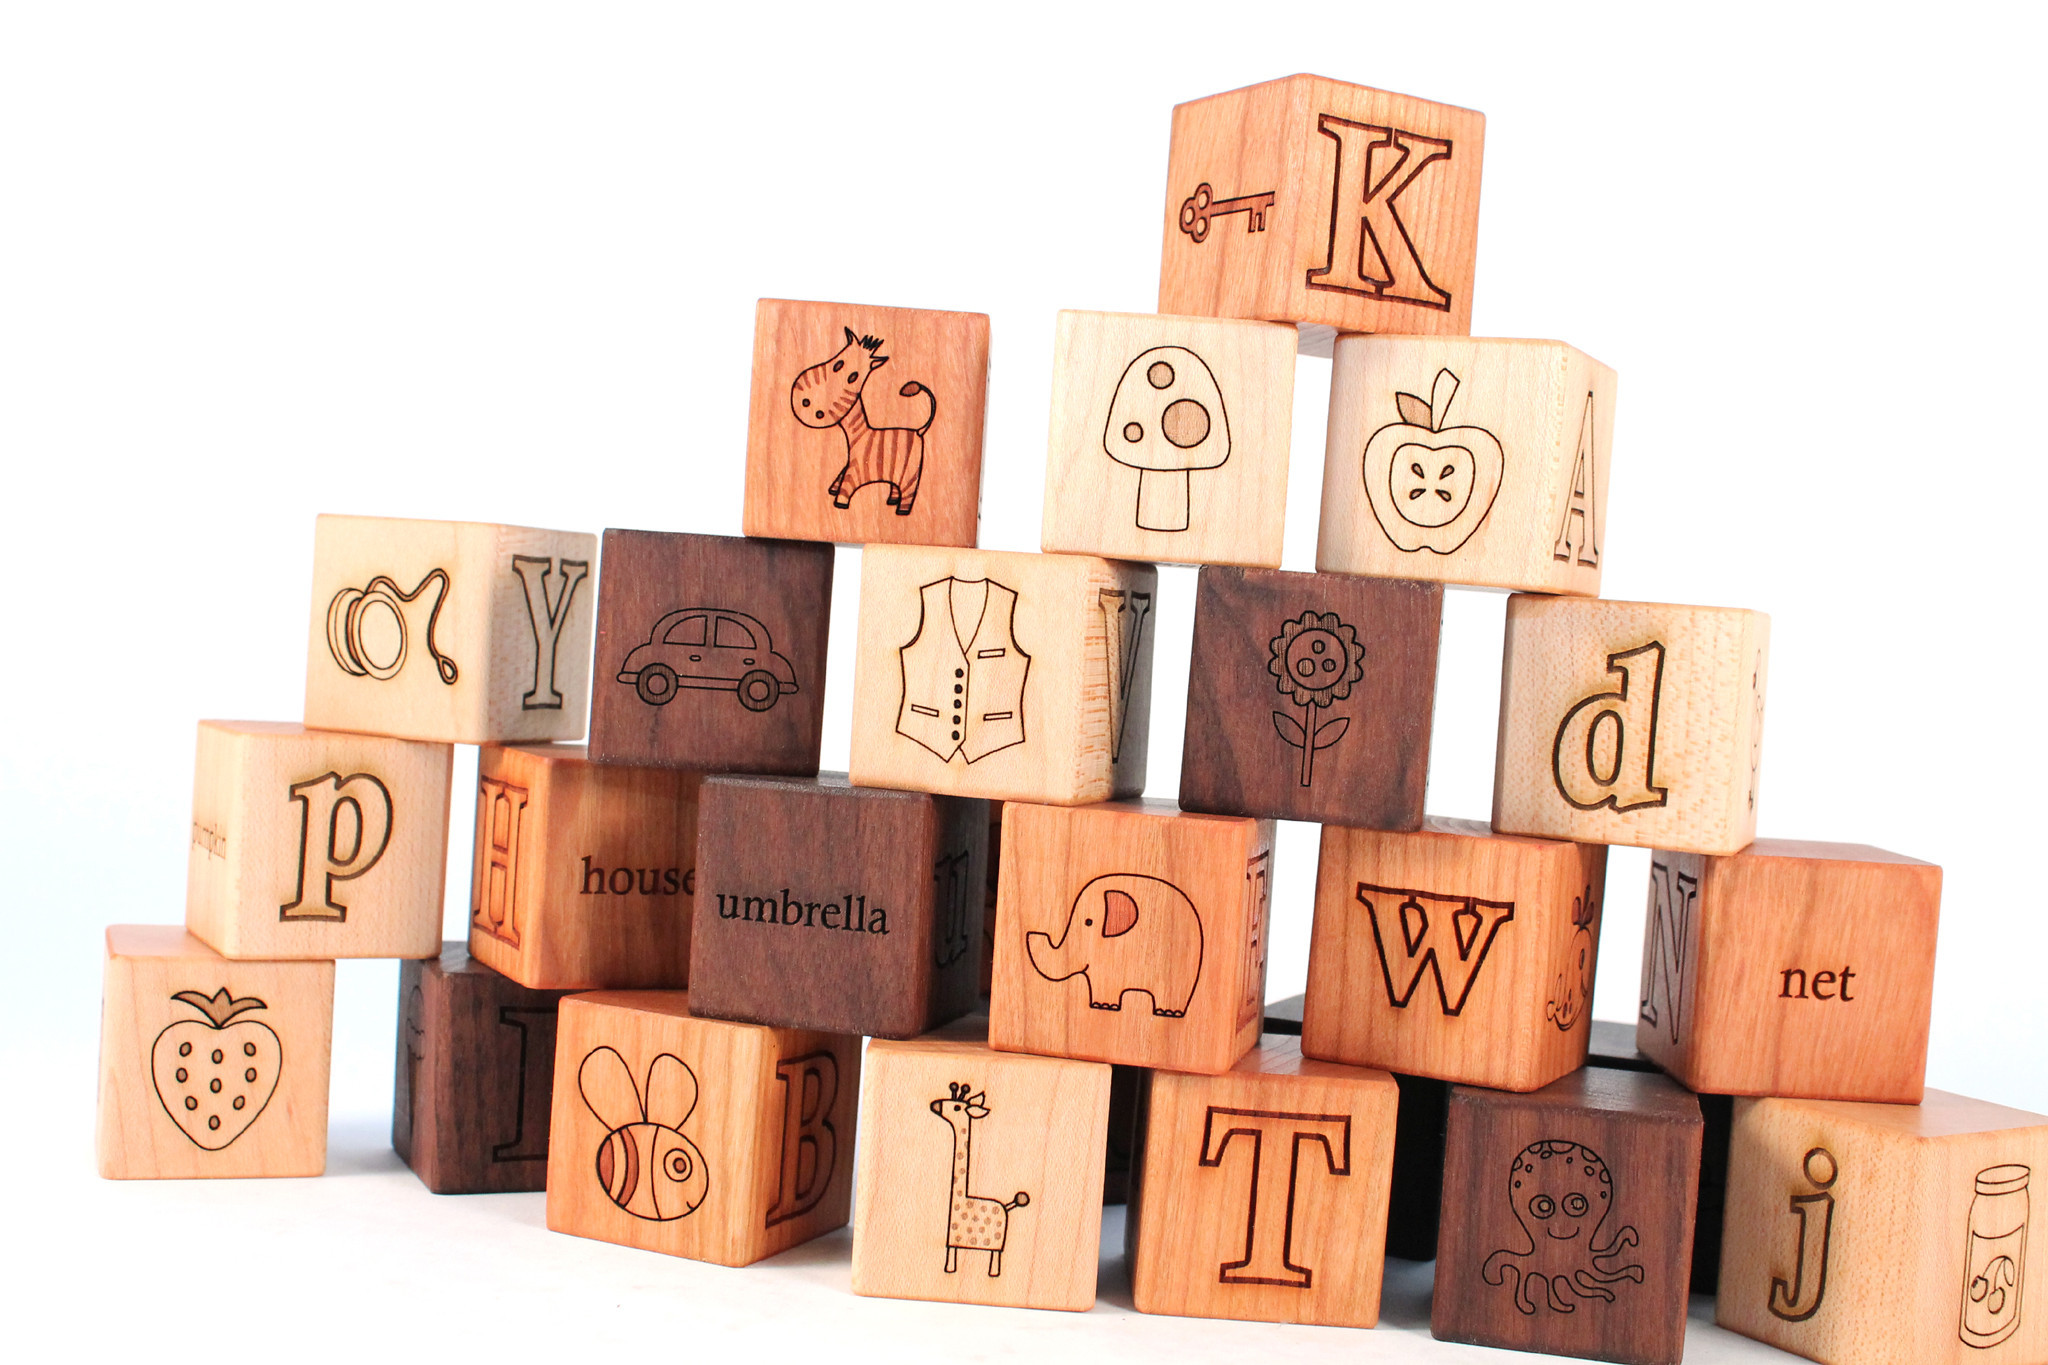 How Can Wooden Blocks Improve Spatial Intelligence in Children